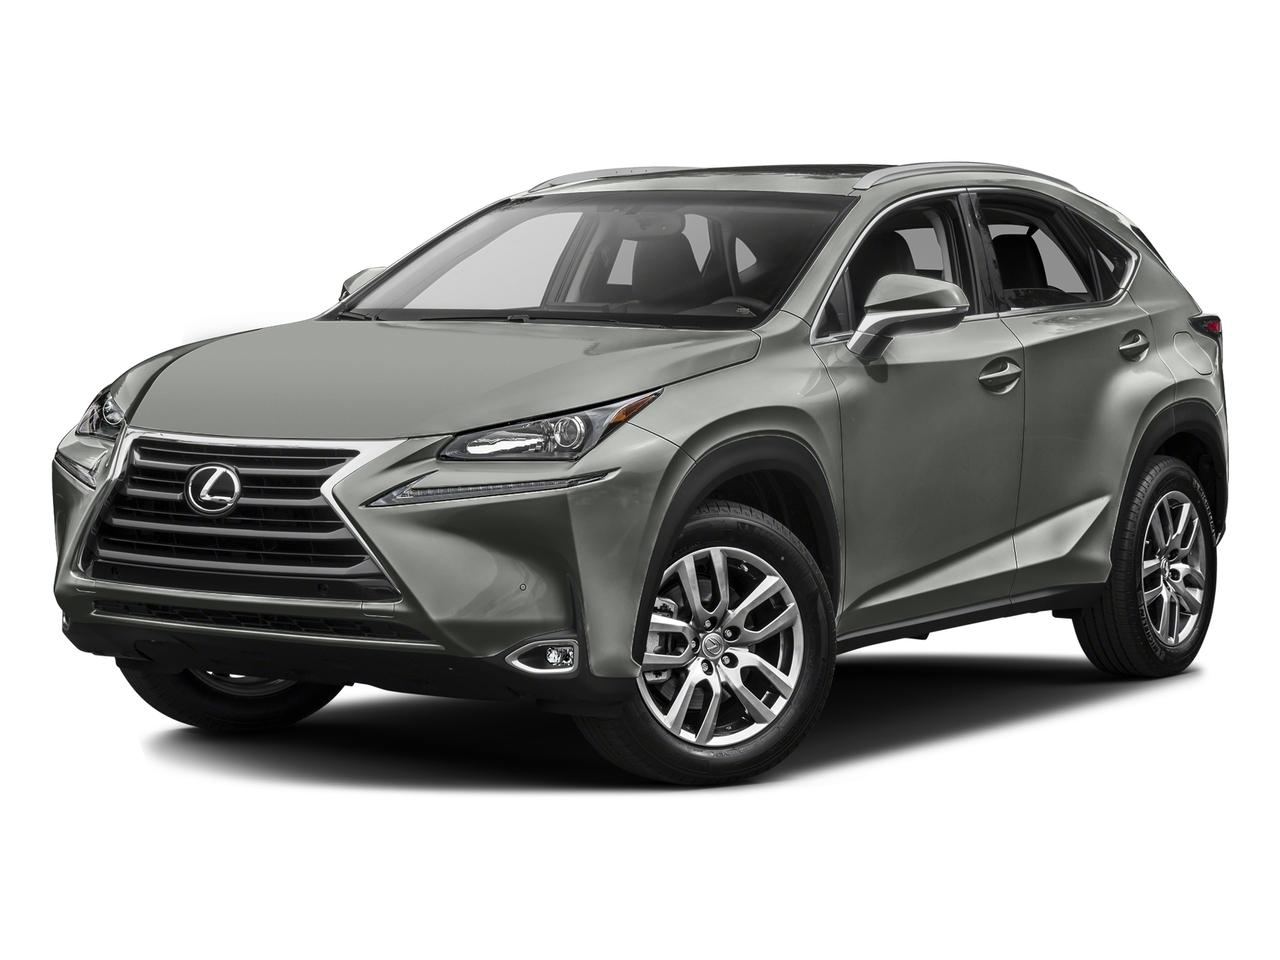 2016 Lexus NX Turbo Vehicle Photo in Charlotte, NC 28212